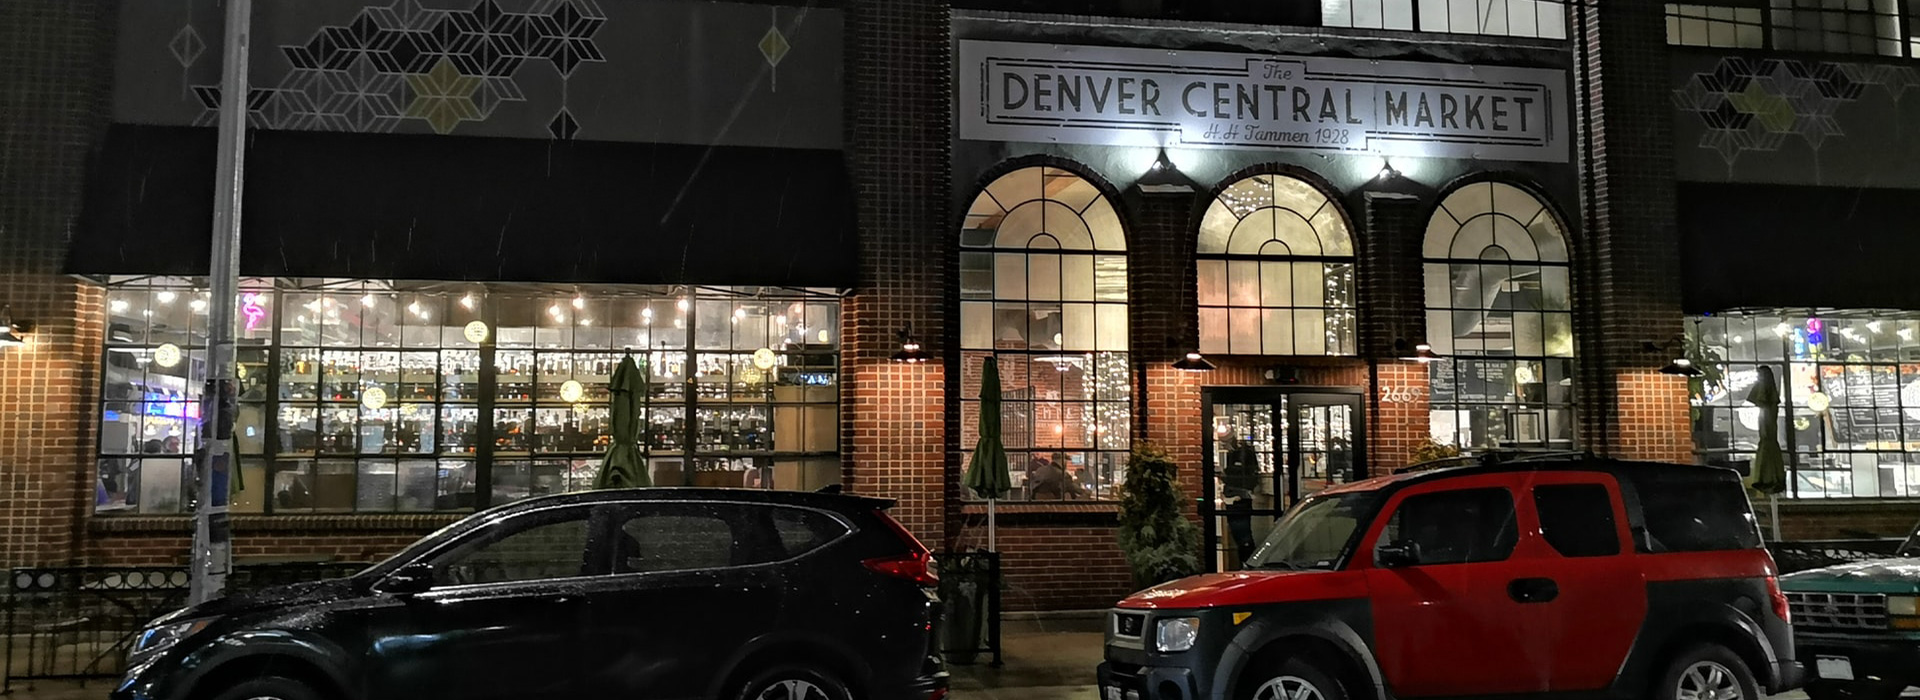 cars parked in front of Denver Central Market at night